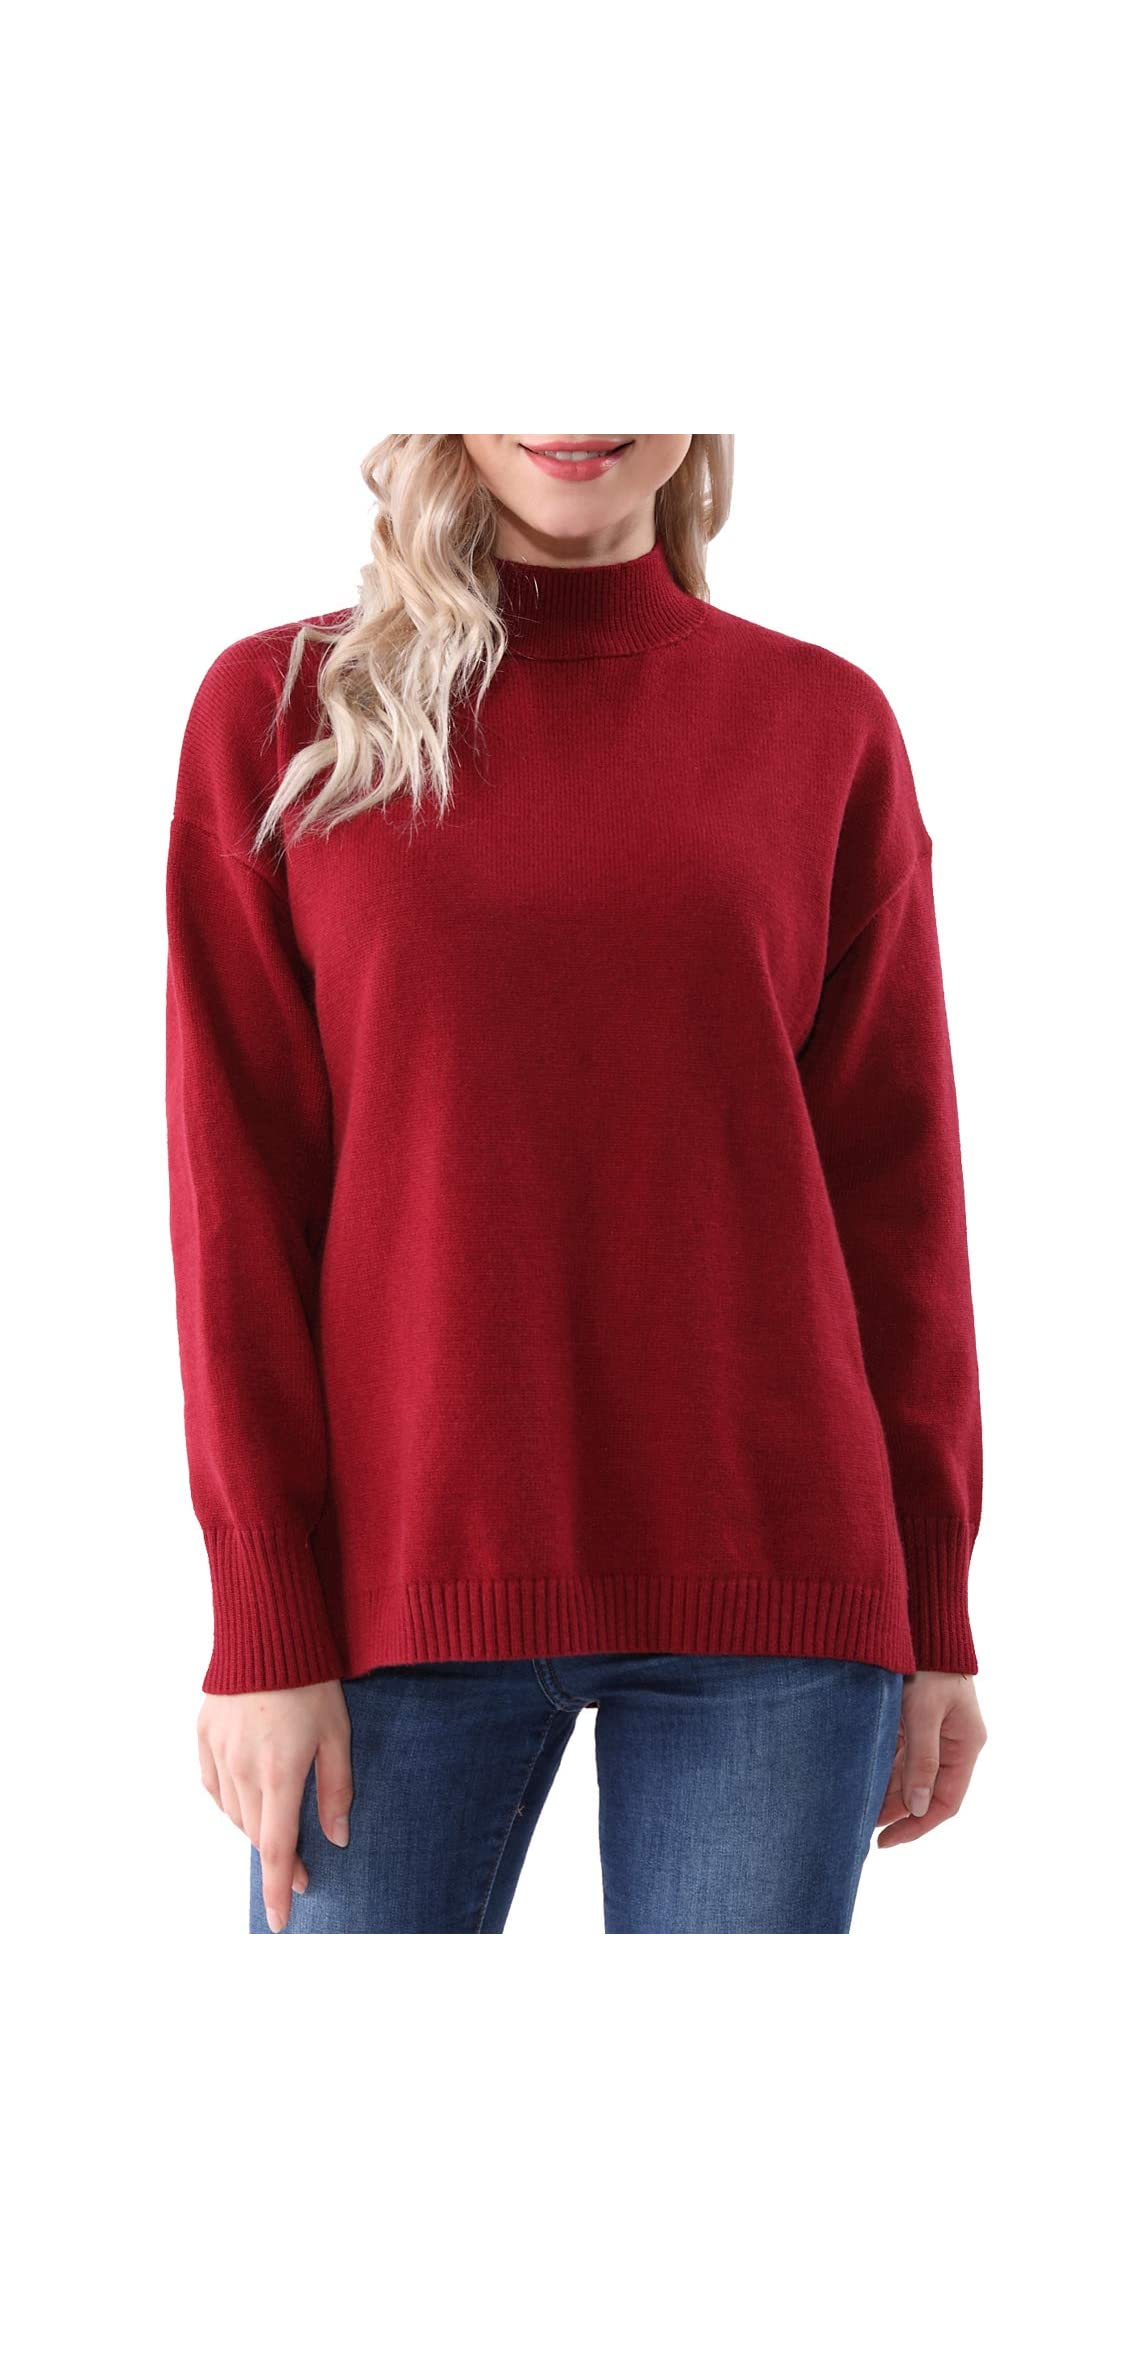 Womens Cashmere Oversized Knitted Long Sleeve Fall Winter